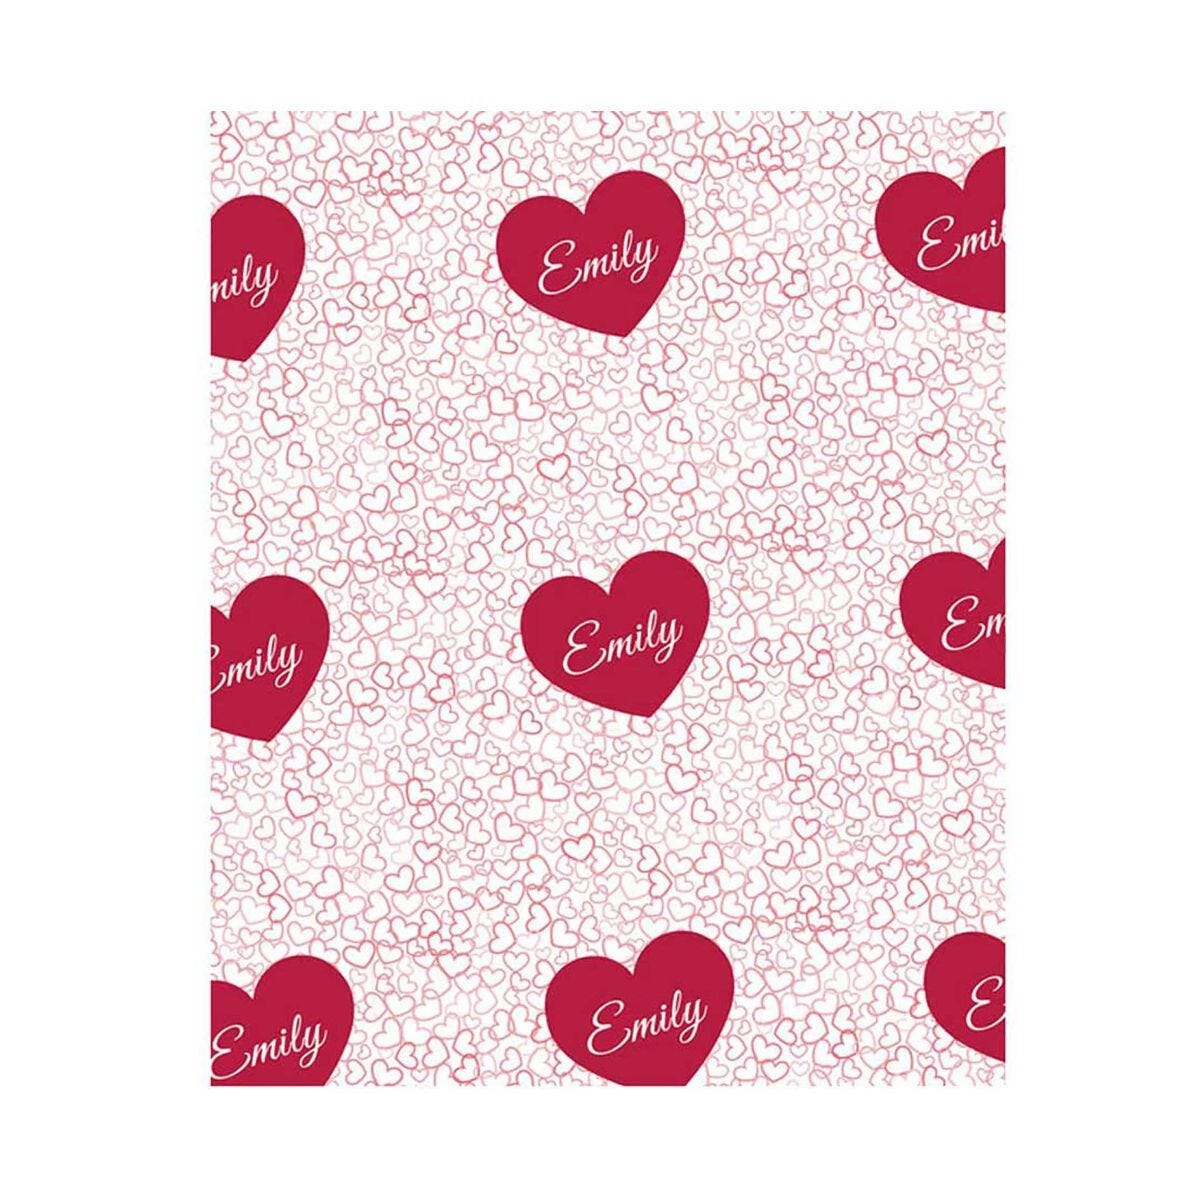 Ryman Personalised Scattered Hearts Wrapping Paper 1 Metre x 1 Metre